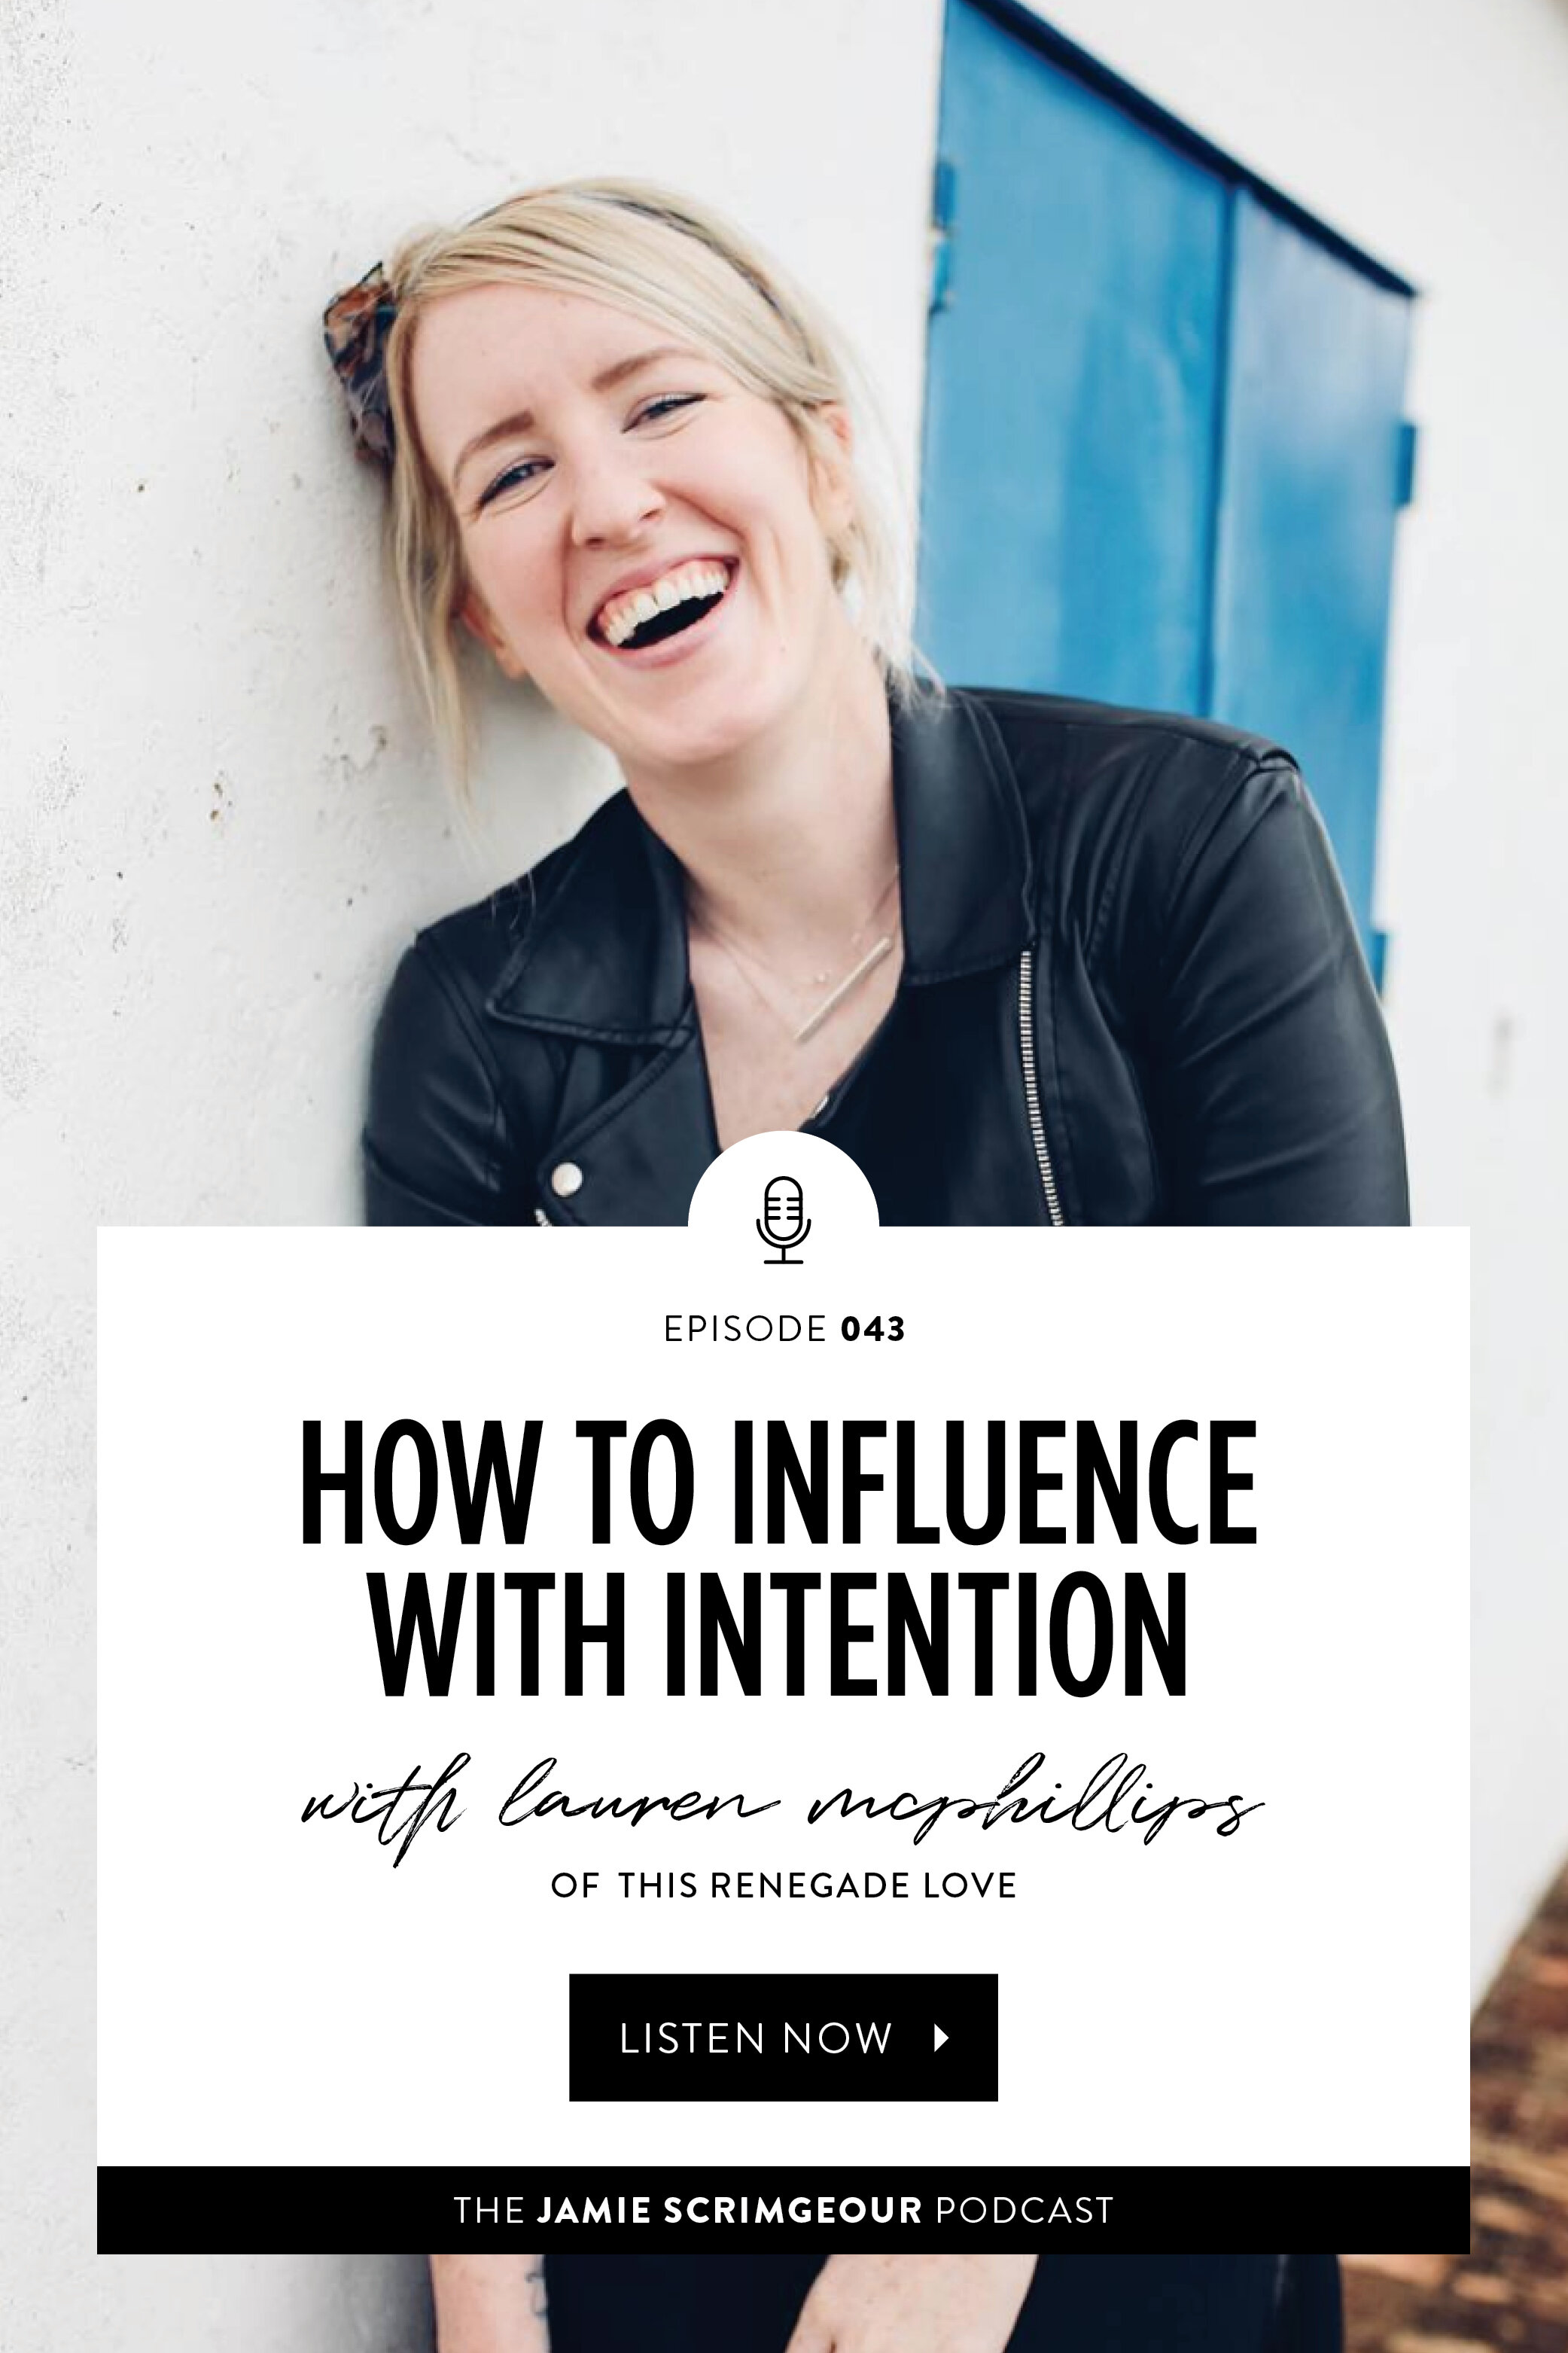 The Jamie Scrimgeour Podcast Episode 043 | How To Influence With Intention With Lauren McPhillips of This Renegade Love